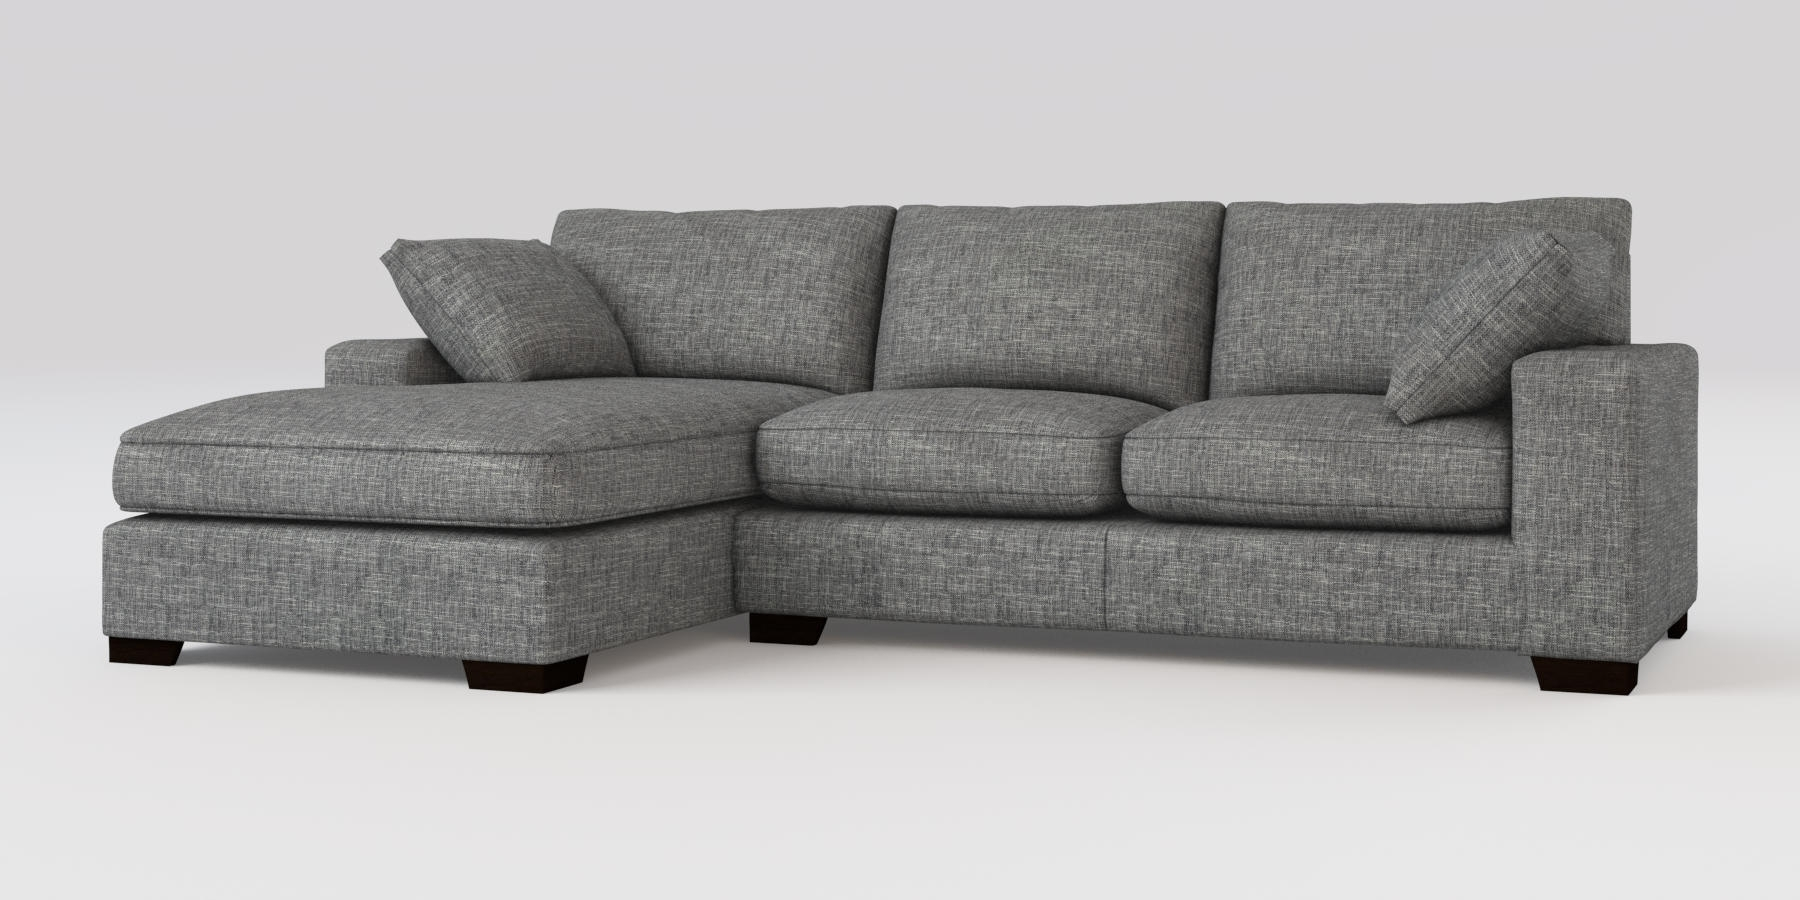 Well Known Corner Chaises With Regard To Buy Sonoma Ii Corner Chaise – Right Hand (4 Seats) Boucle Weave (View 14 of 15)